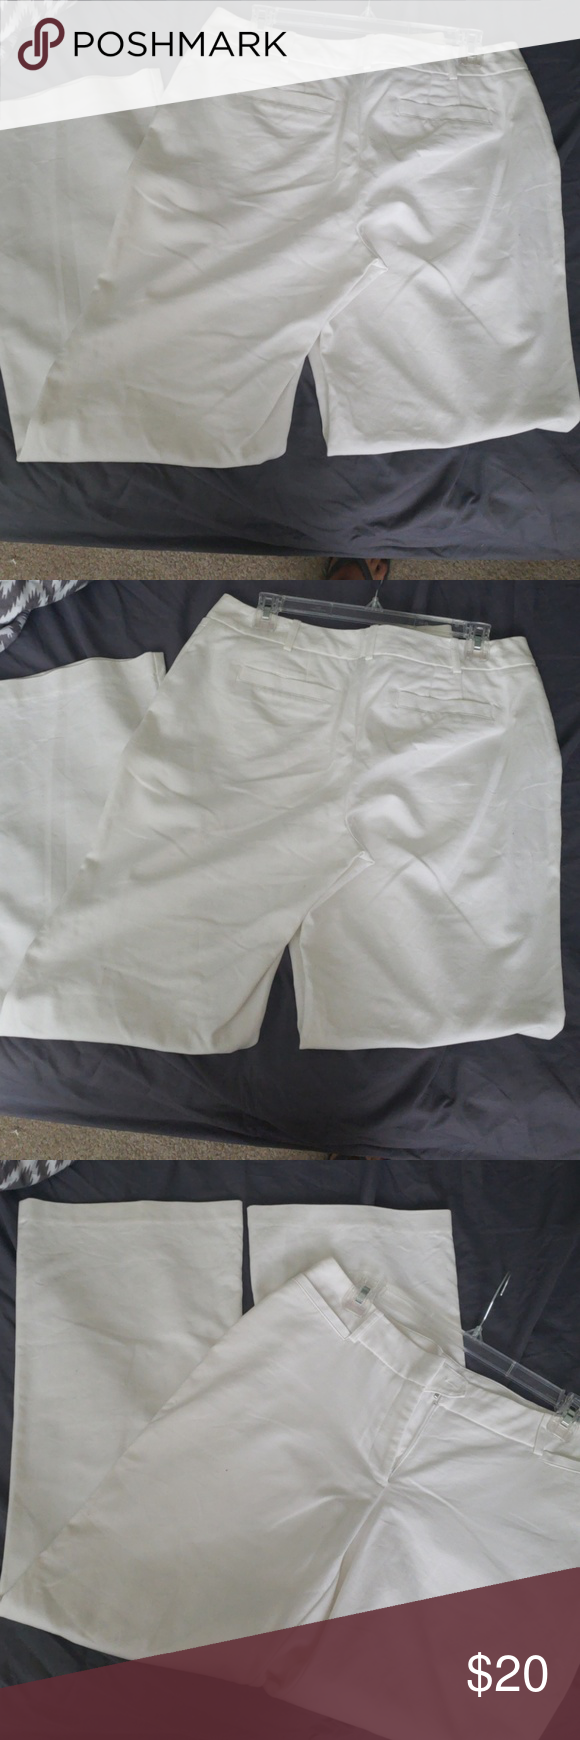 White slacks White slacks in good condition Worthington Pants Boot Cut & Flare #whiteslacks